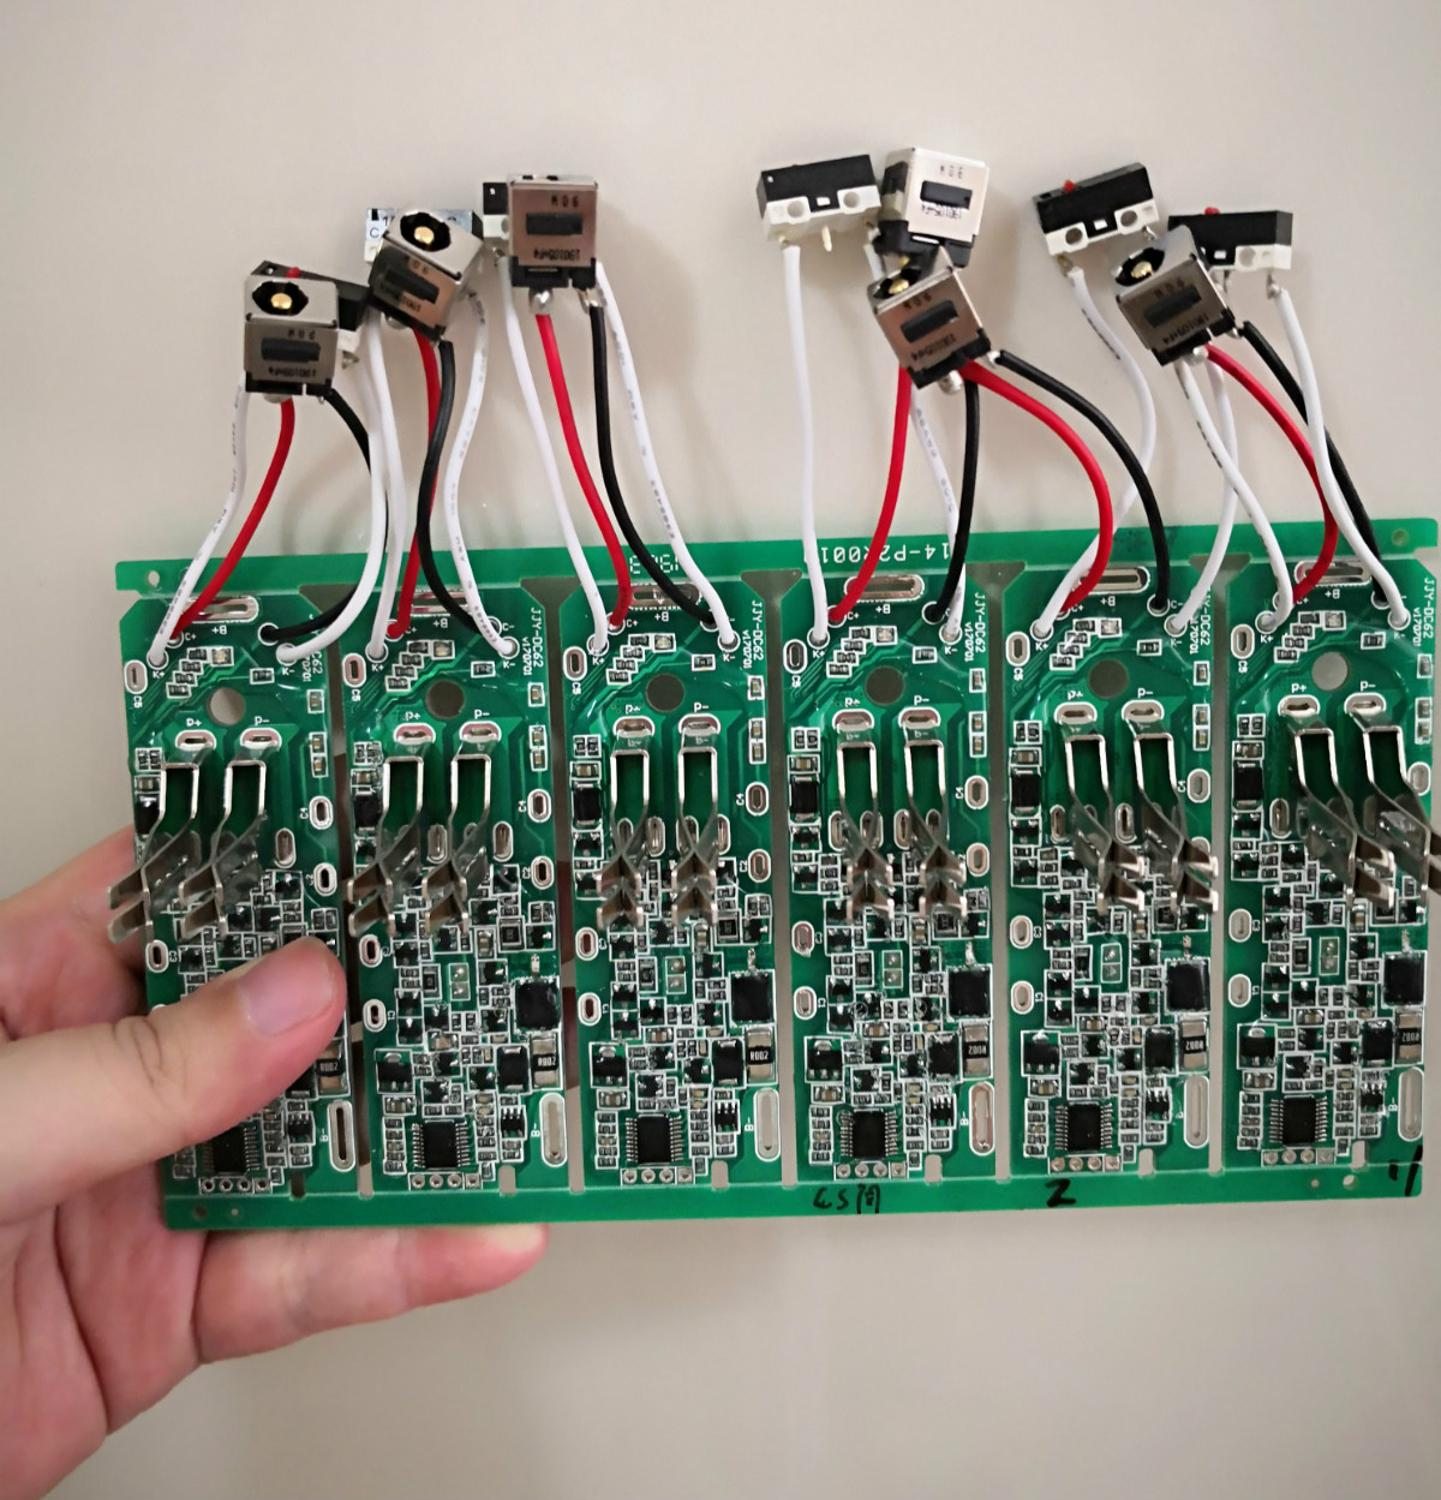 Battery Protection Board PCB Board For Dyson V6 Without Charge Socket And Switches